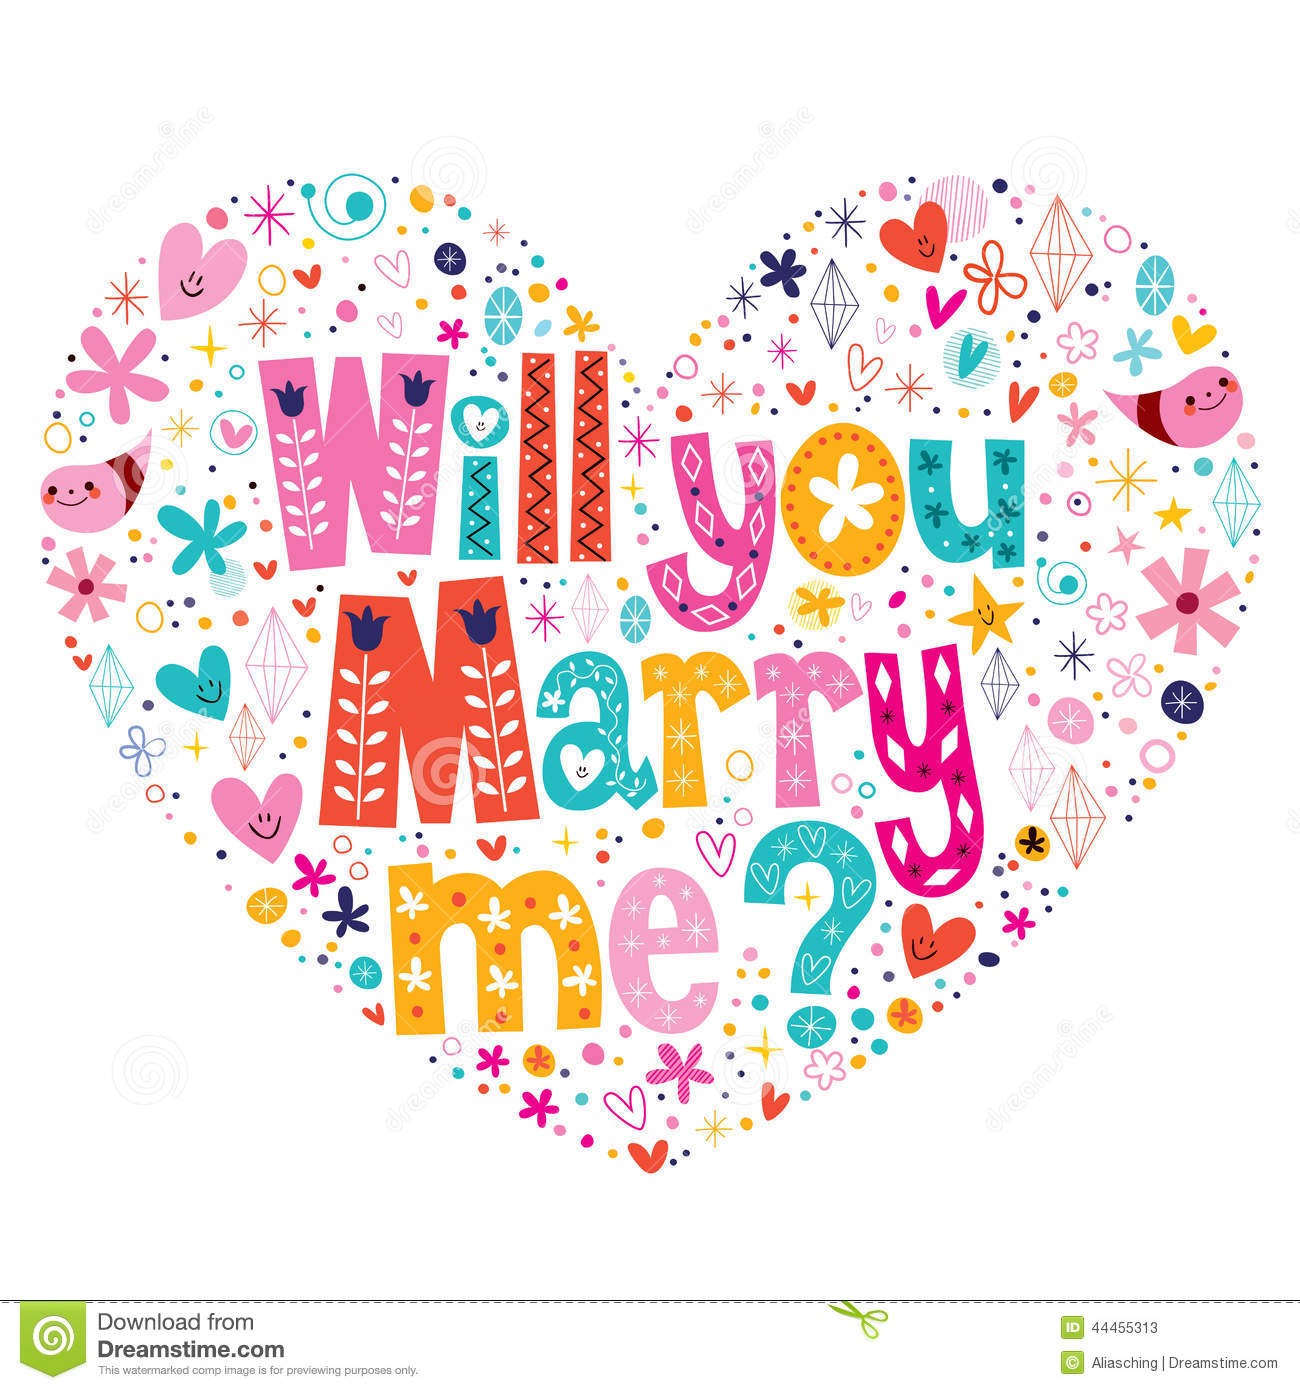 will you marry me images download